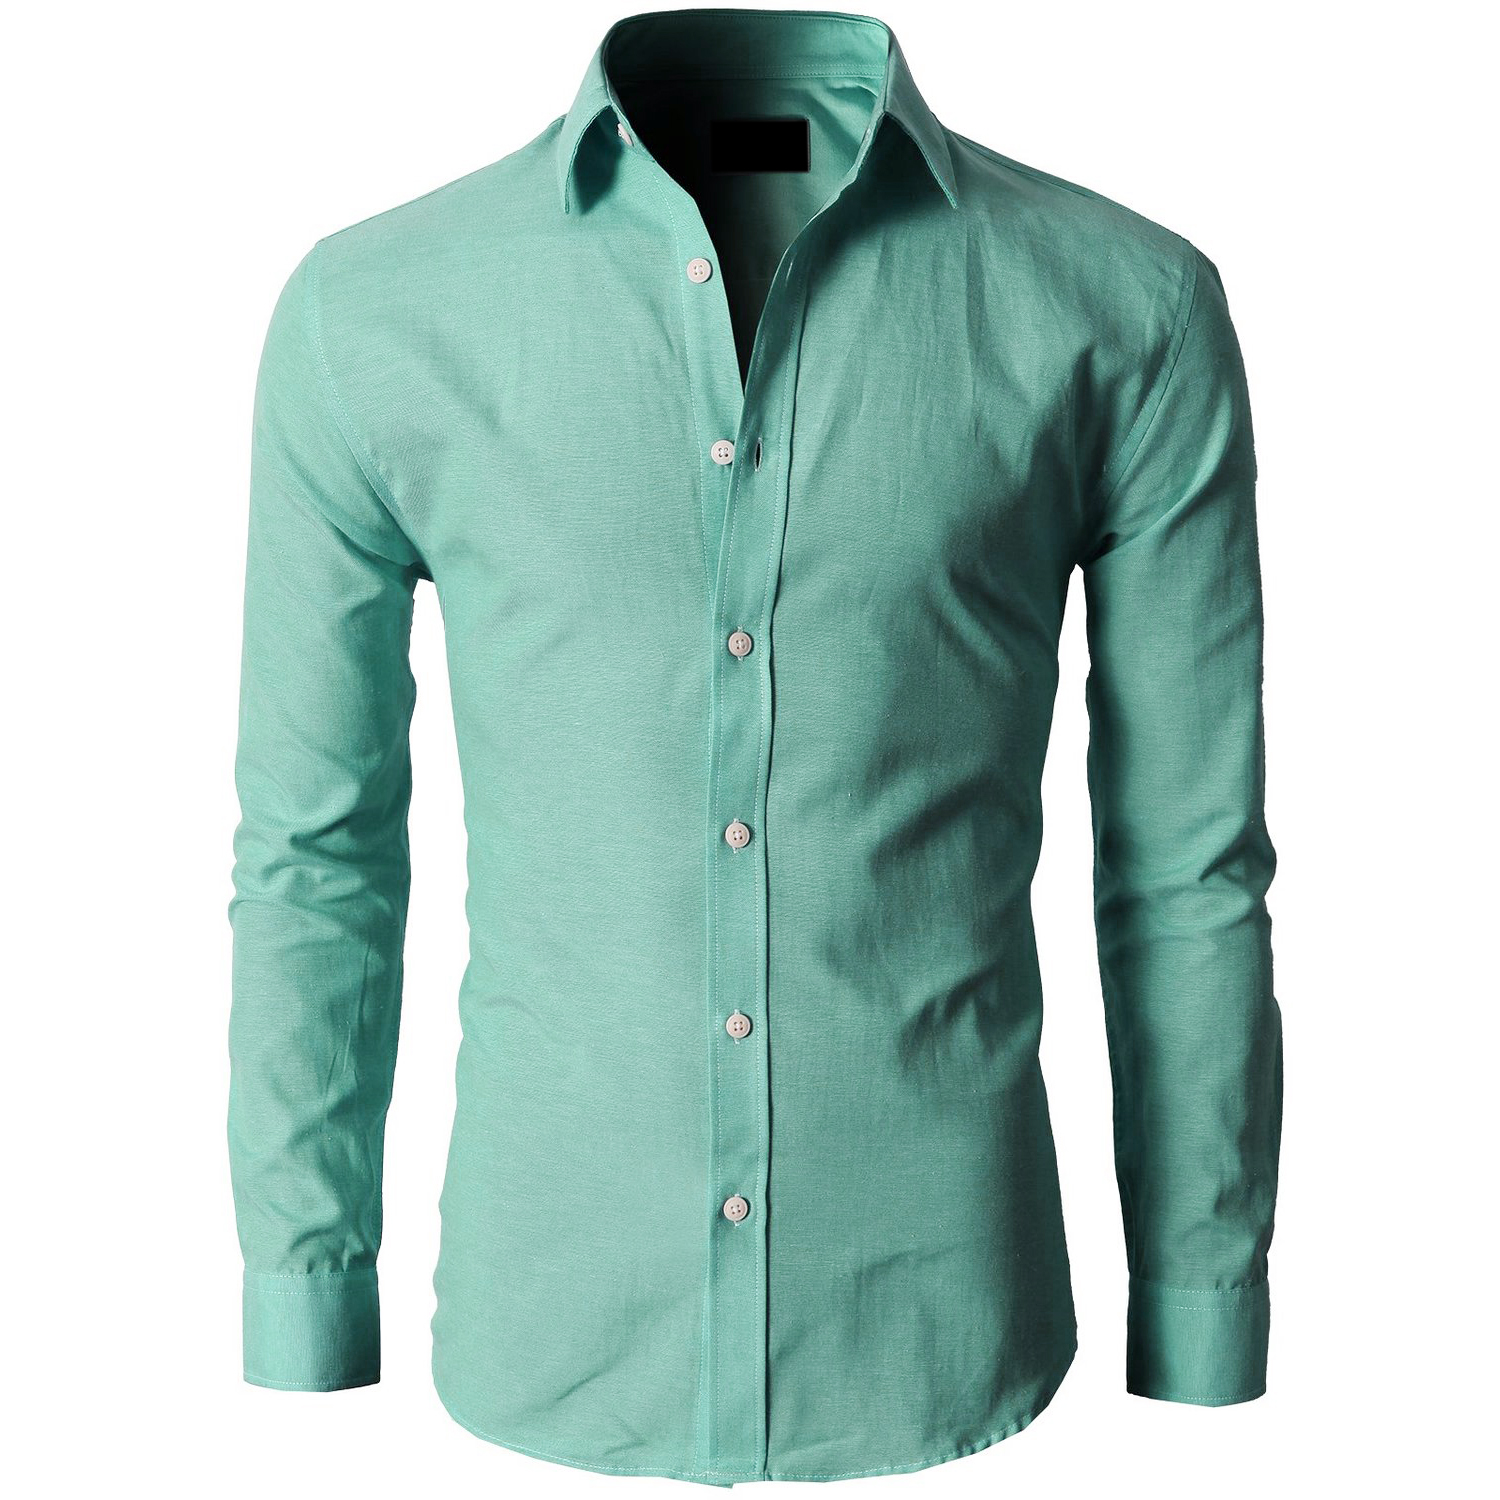 2017 NEW Stylish Casual Dress Slim Fit Shirt Casual Long Sleeve 17 Gray Green ...